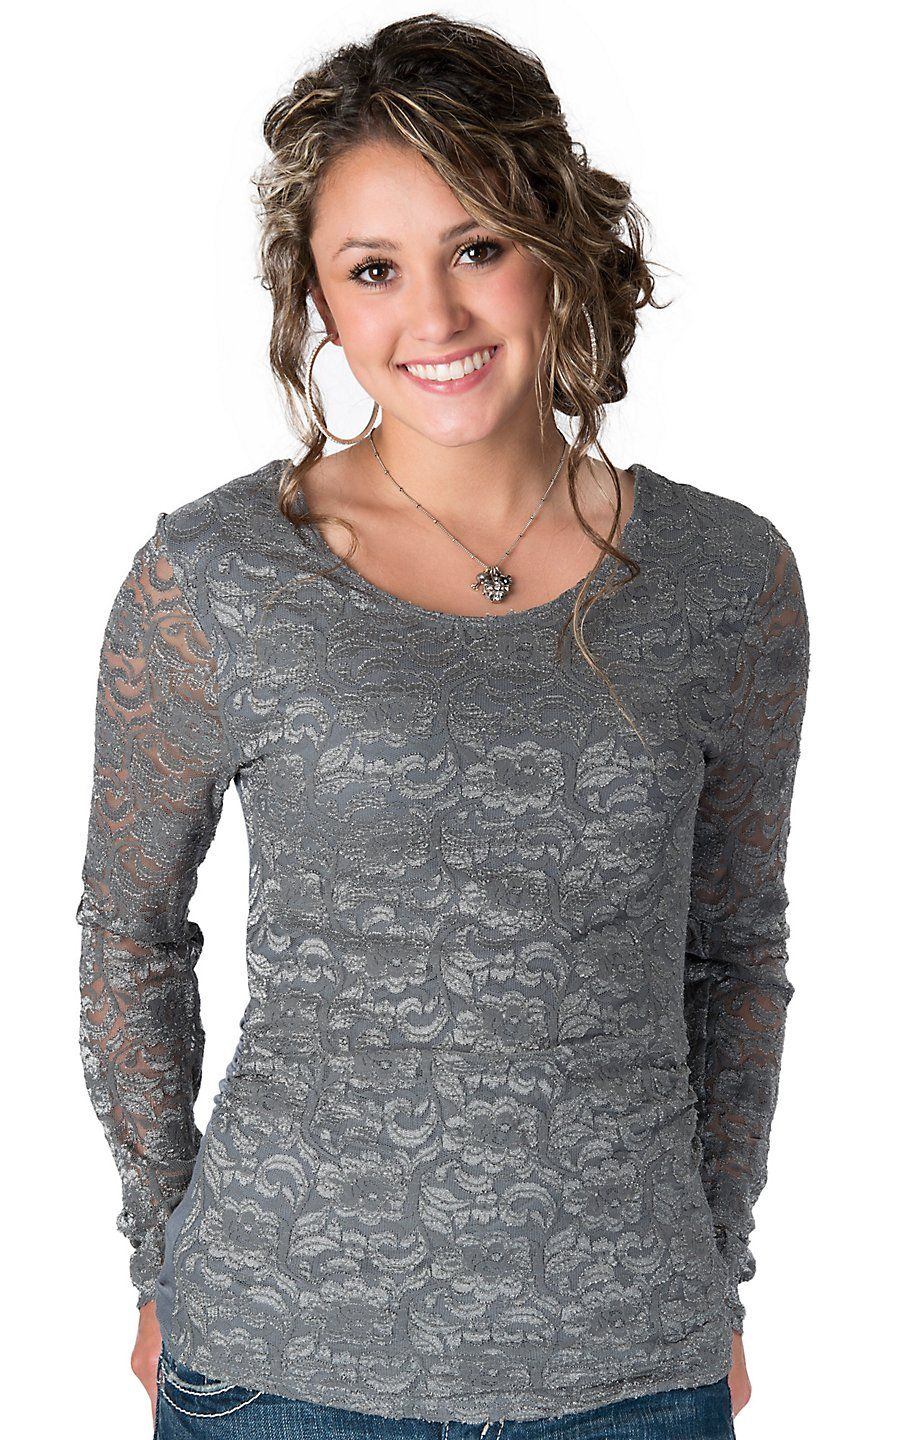 eda4c29520ff13 Panhandle Slim® Women s Charcoal Lace   Knit Long Sleeve Top ...